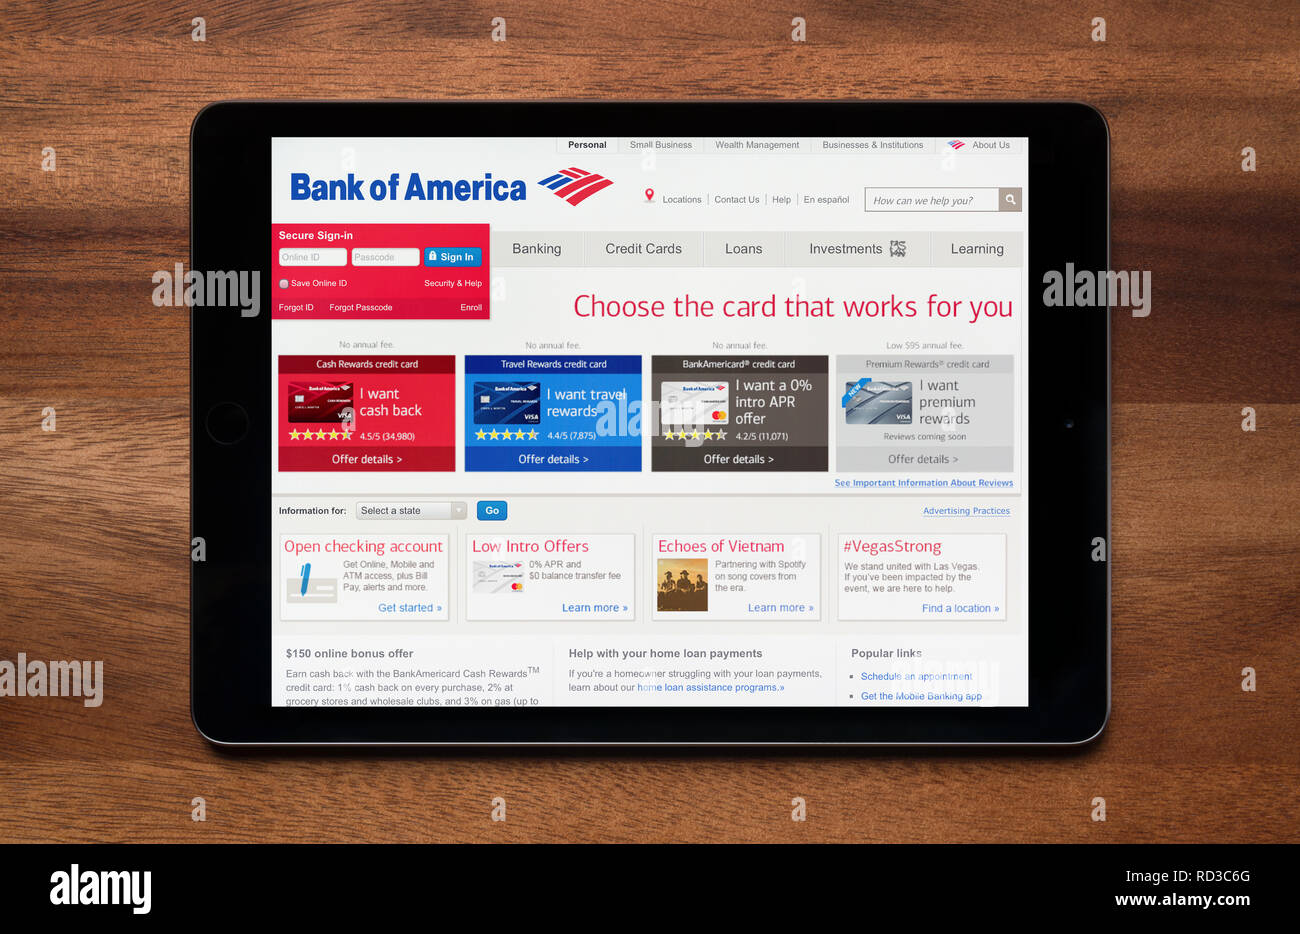 The website of Bank of America is seen on an iPad tablet